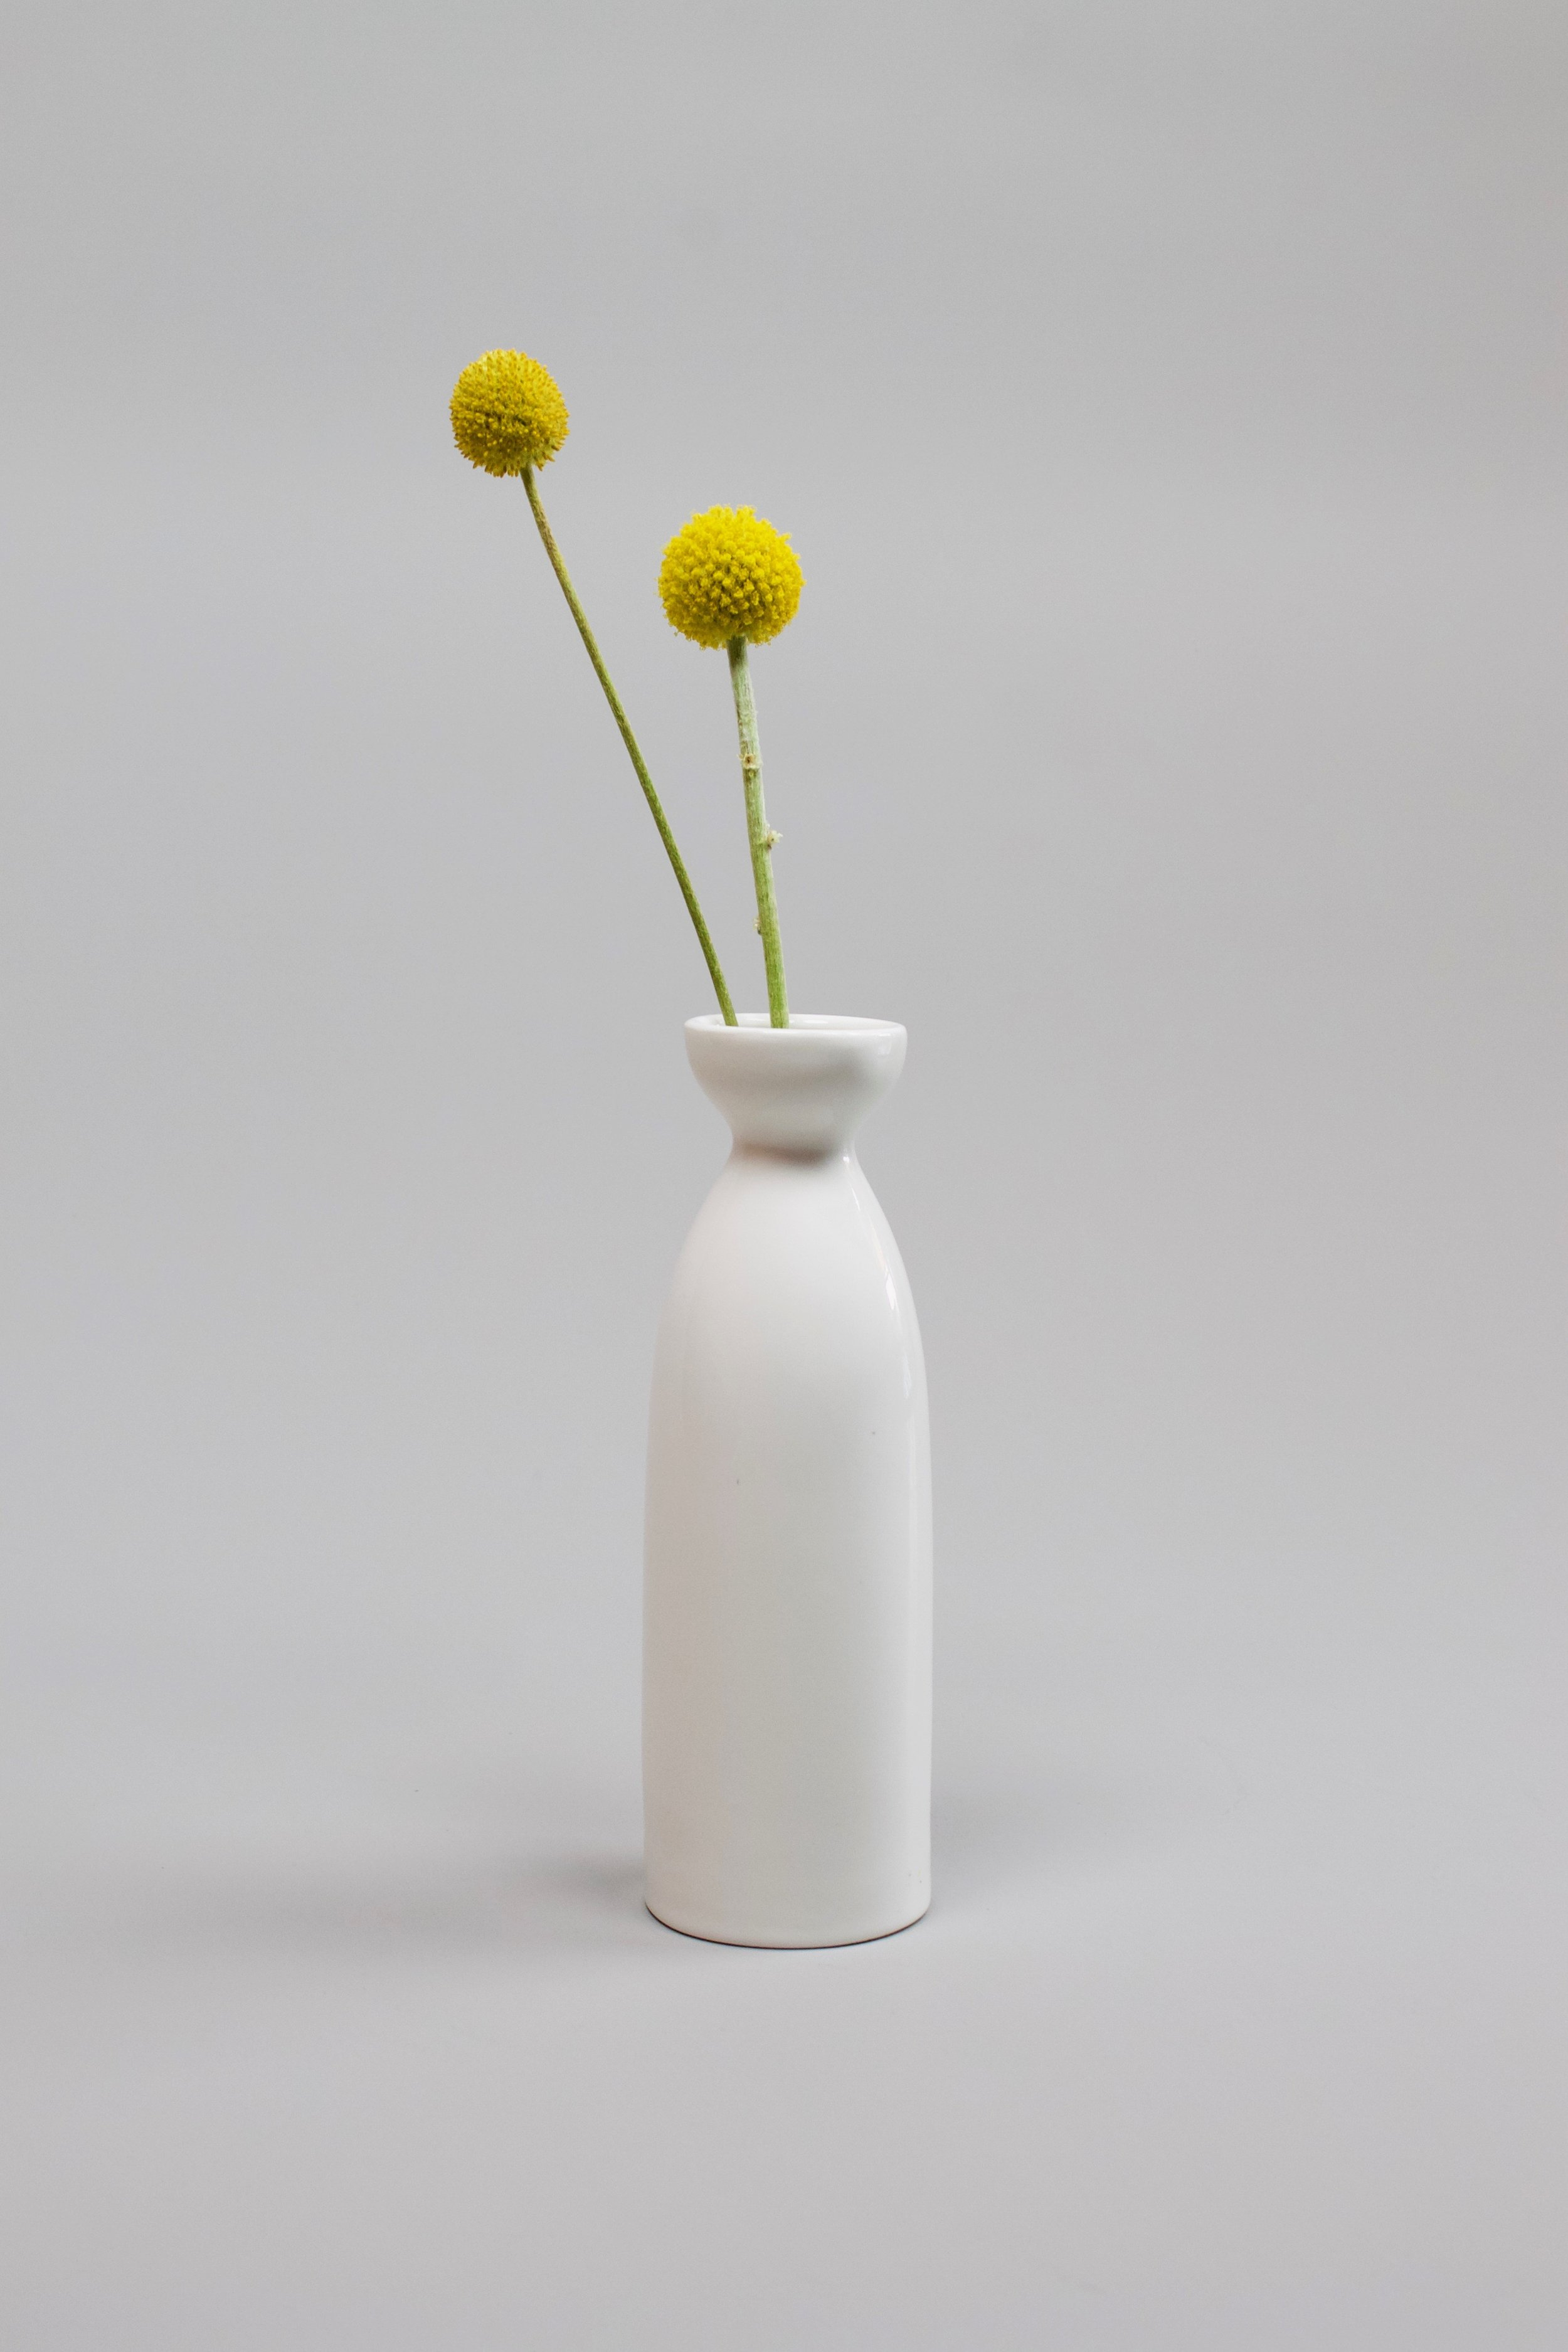 White sake vase   Originally used for pouring sake, but also suitable as a flower vase. Found in a thrift store.